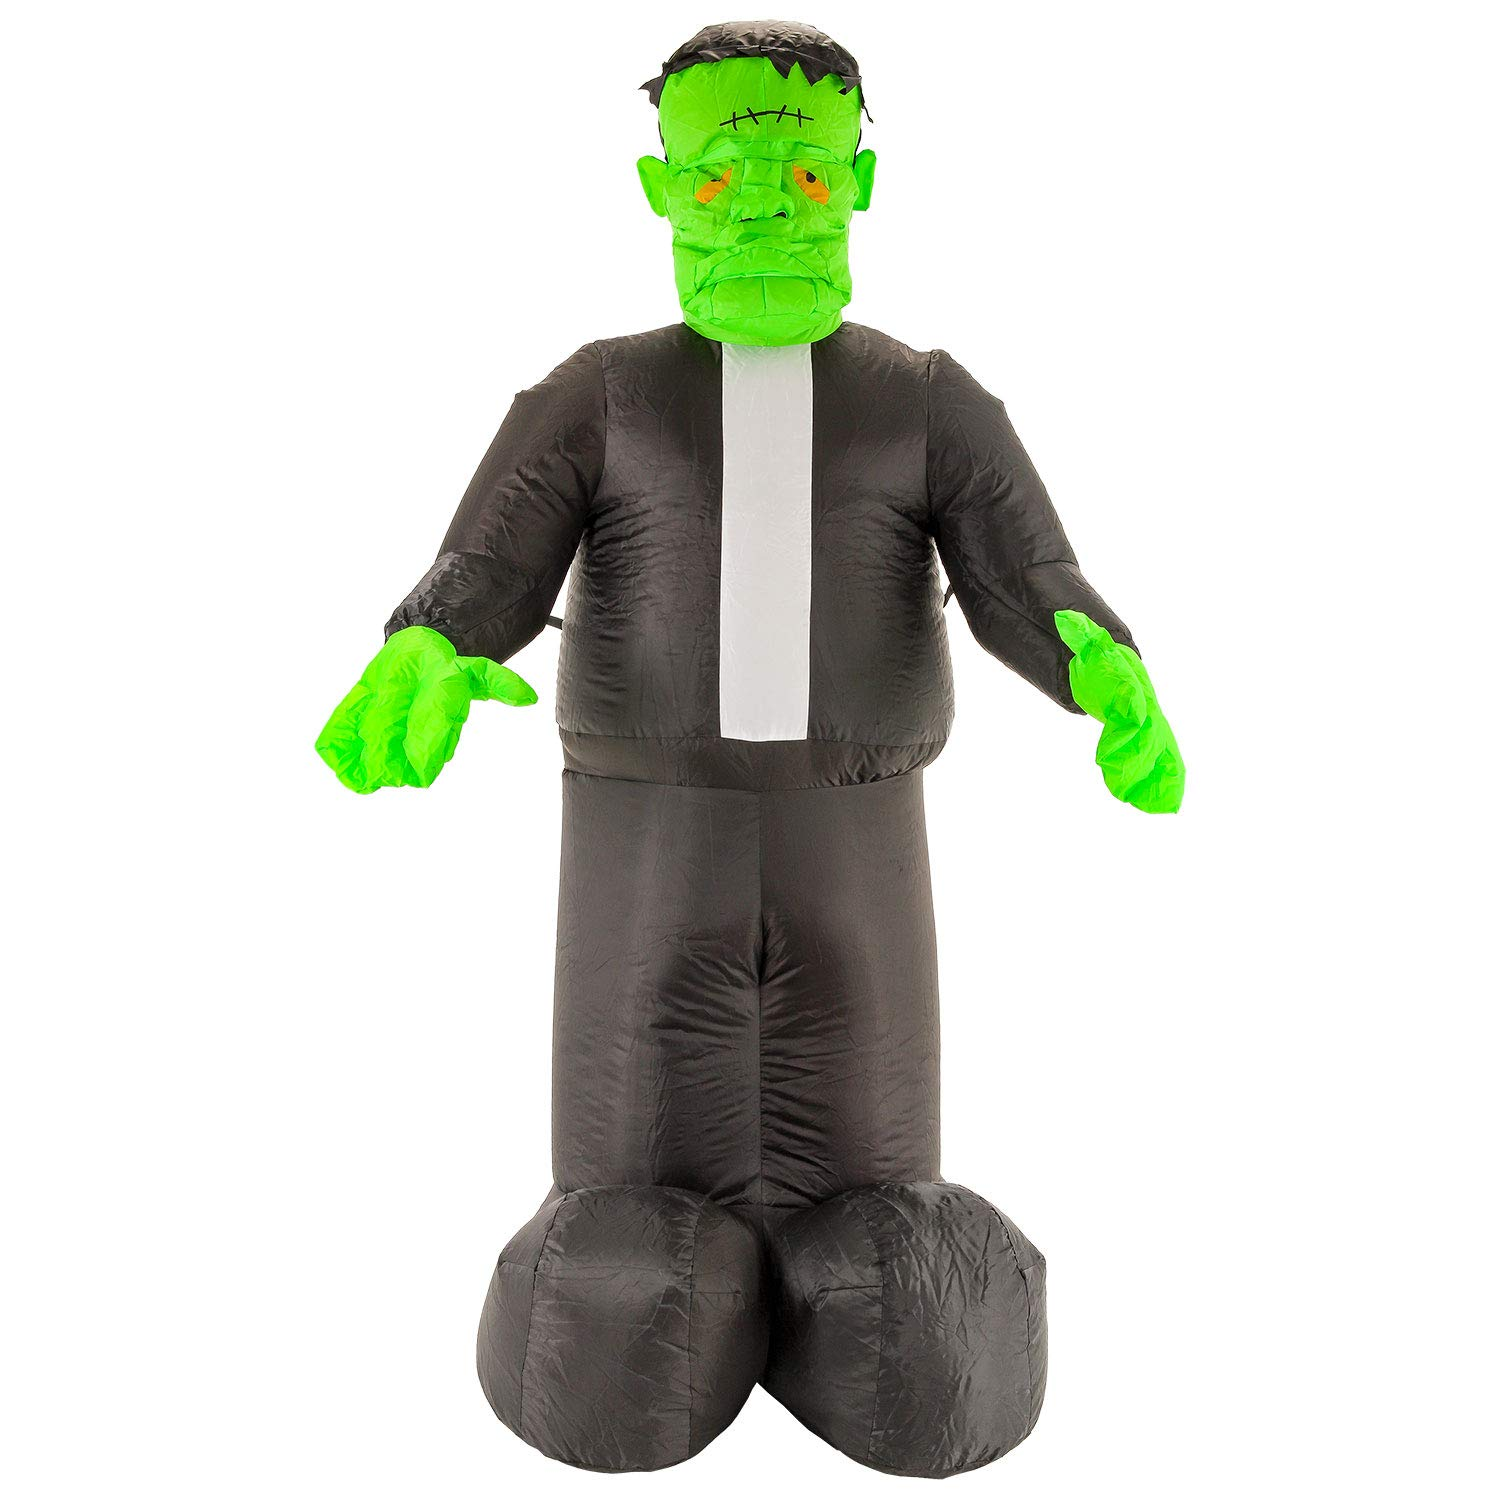 Halloween Haunters 7 Foot Inflatable Frankenstein Monster with LED Lights Indoor Outdoor Yard Lawn Prop Decoration - Blow Up Haunted House Party Display